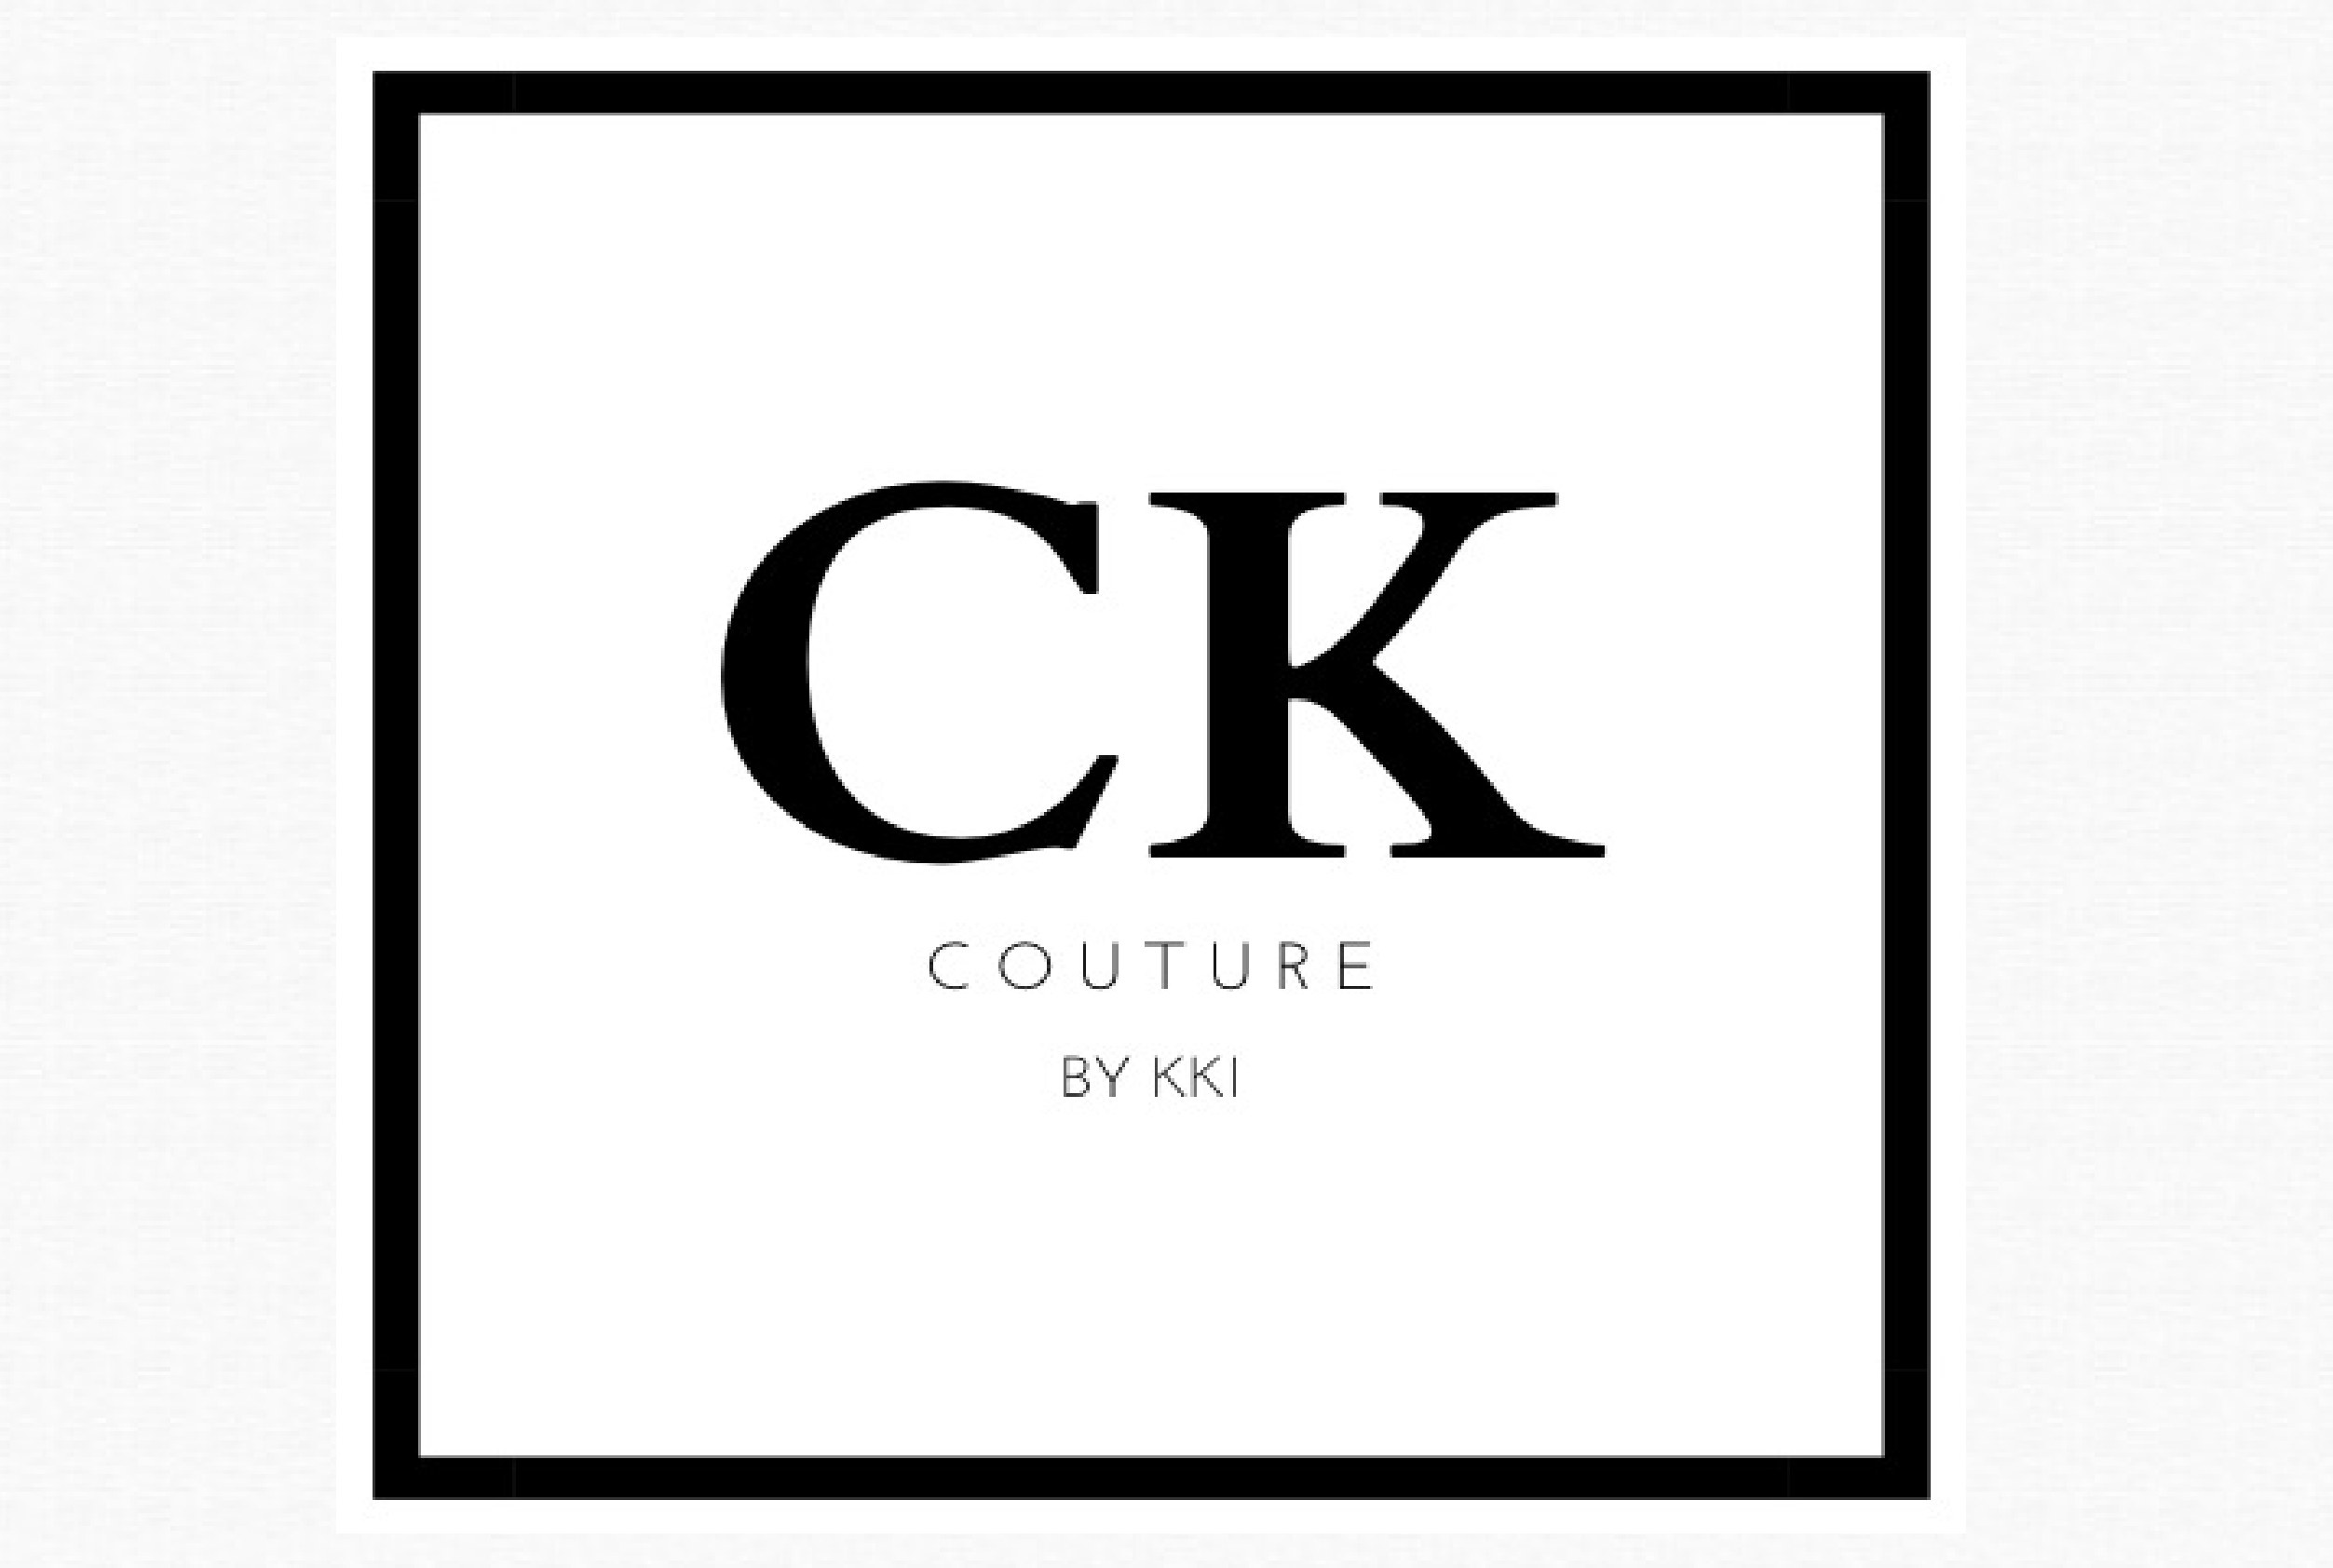 CK COUTURE